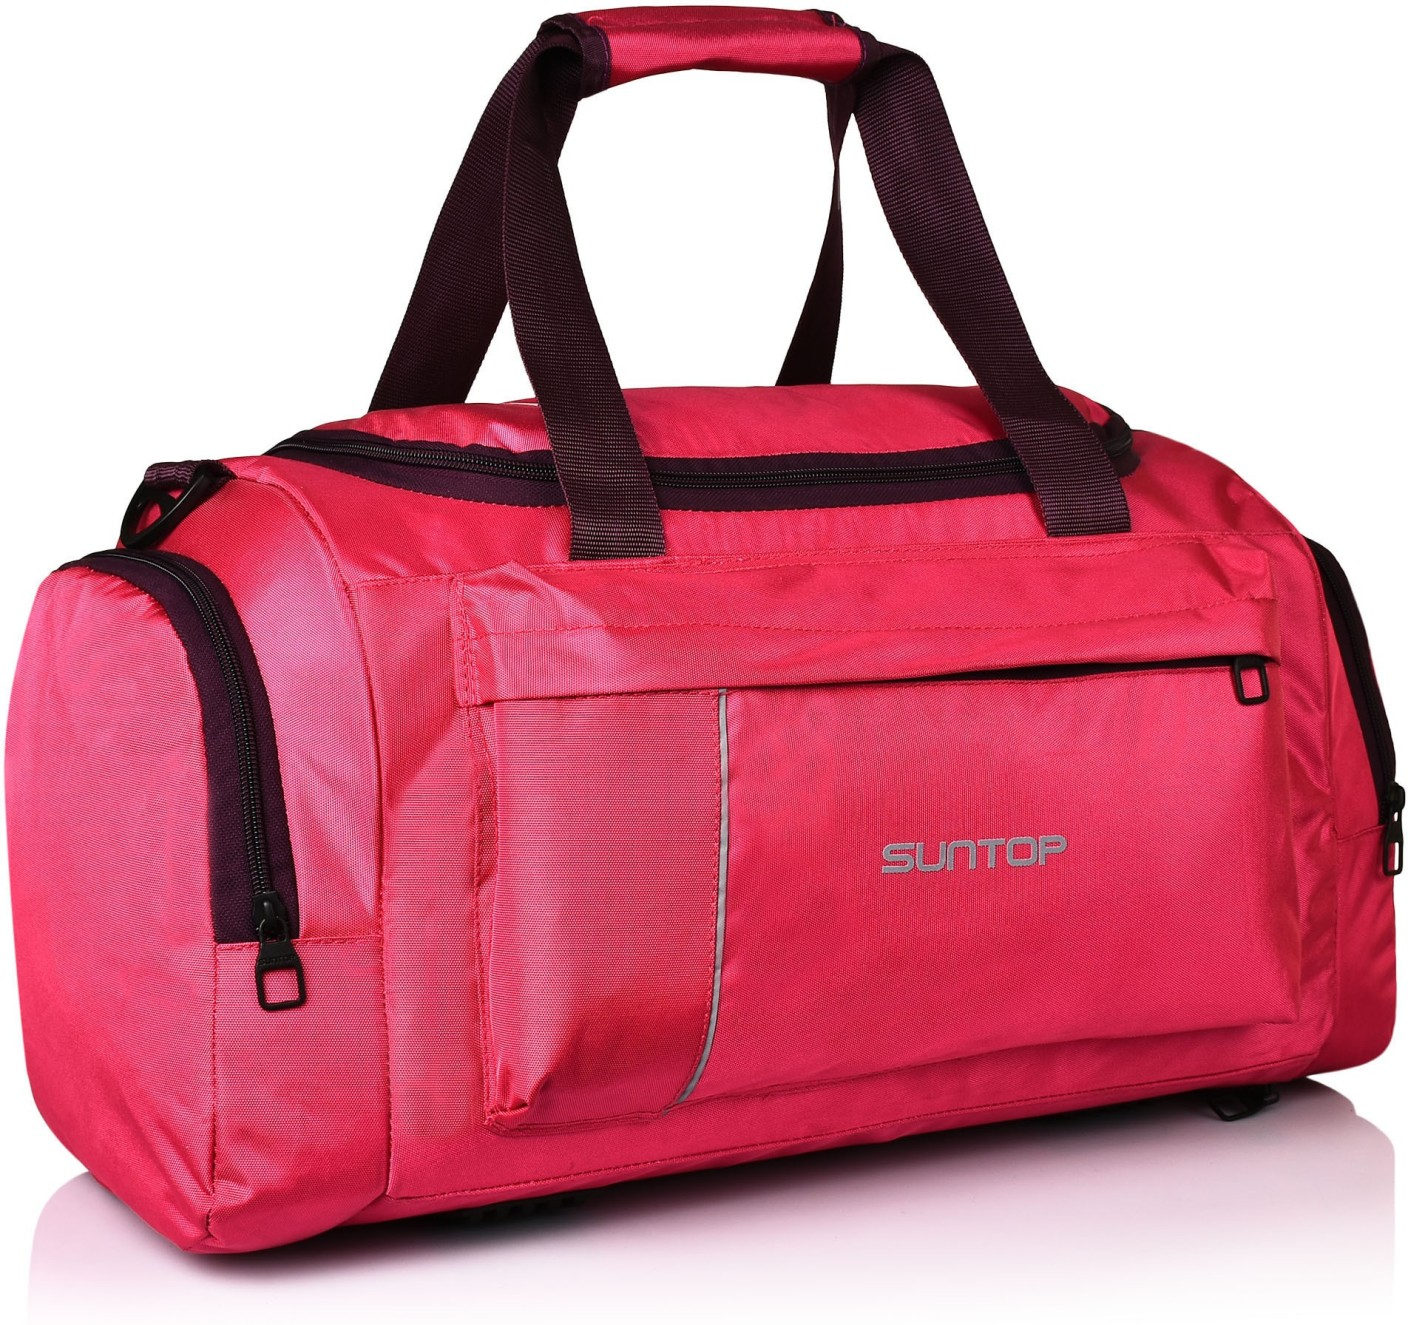 Gym Bag Flipkart: Suntop Alive Travel/Gym/Fitness Travel Duffel Bag Pink